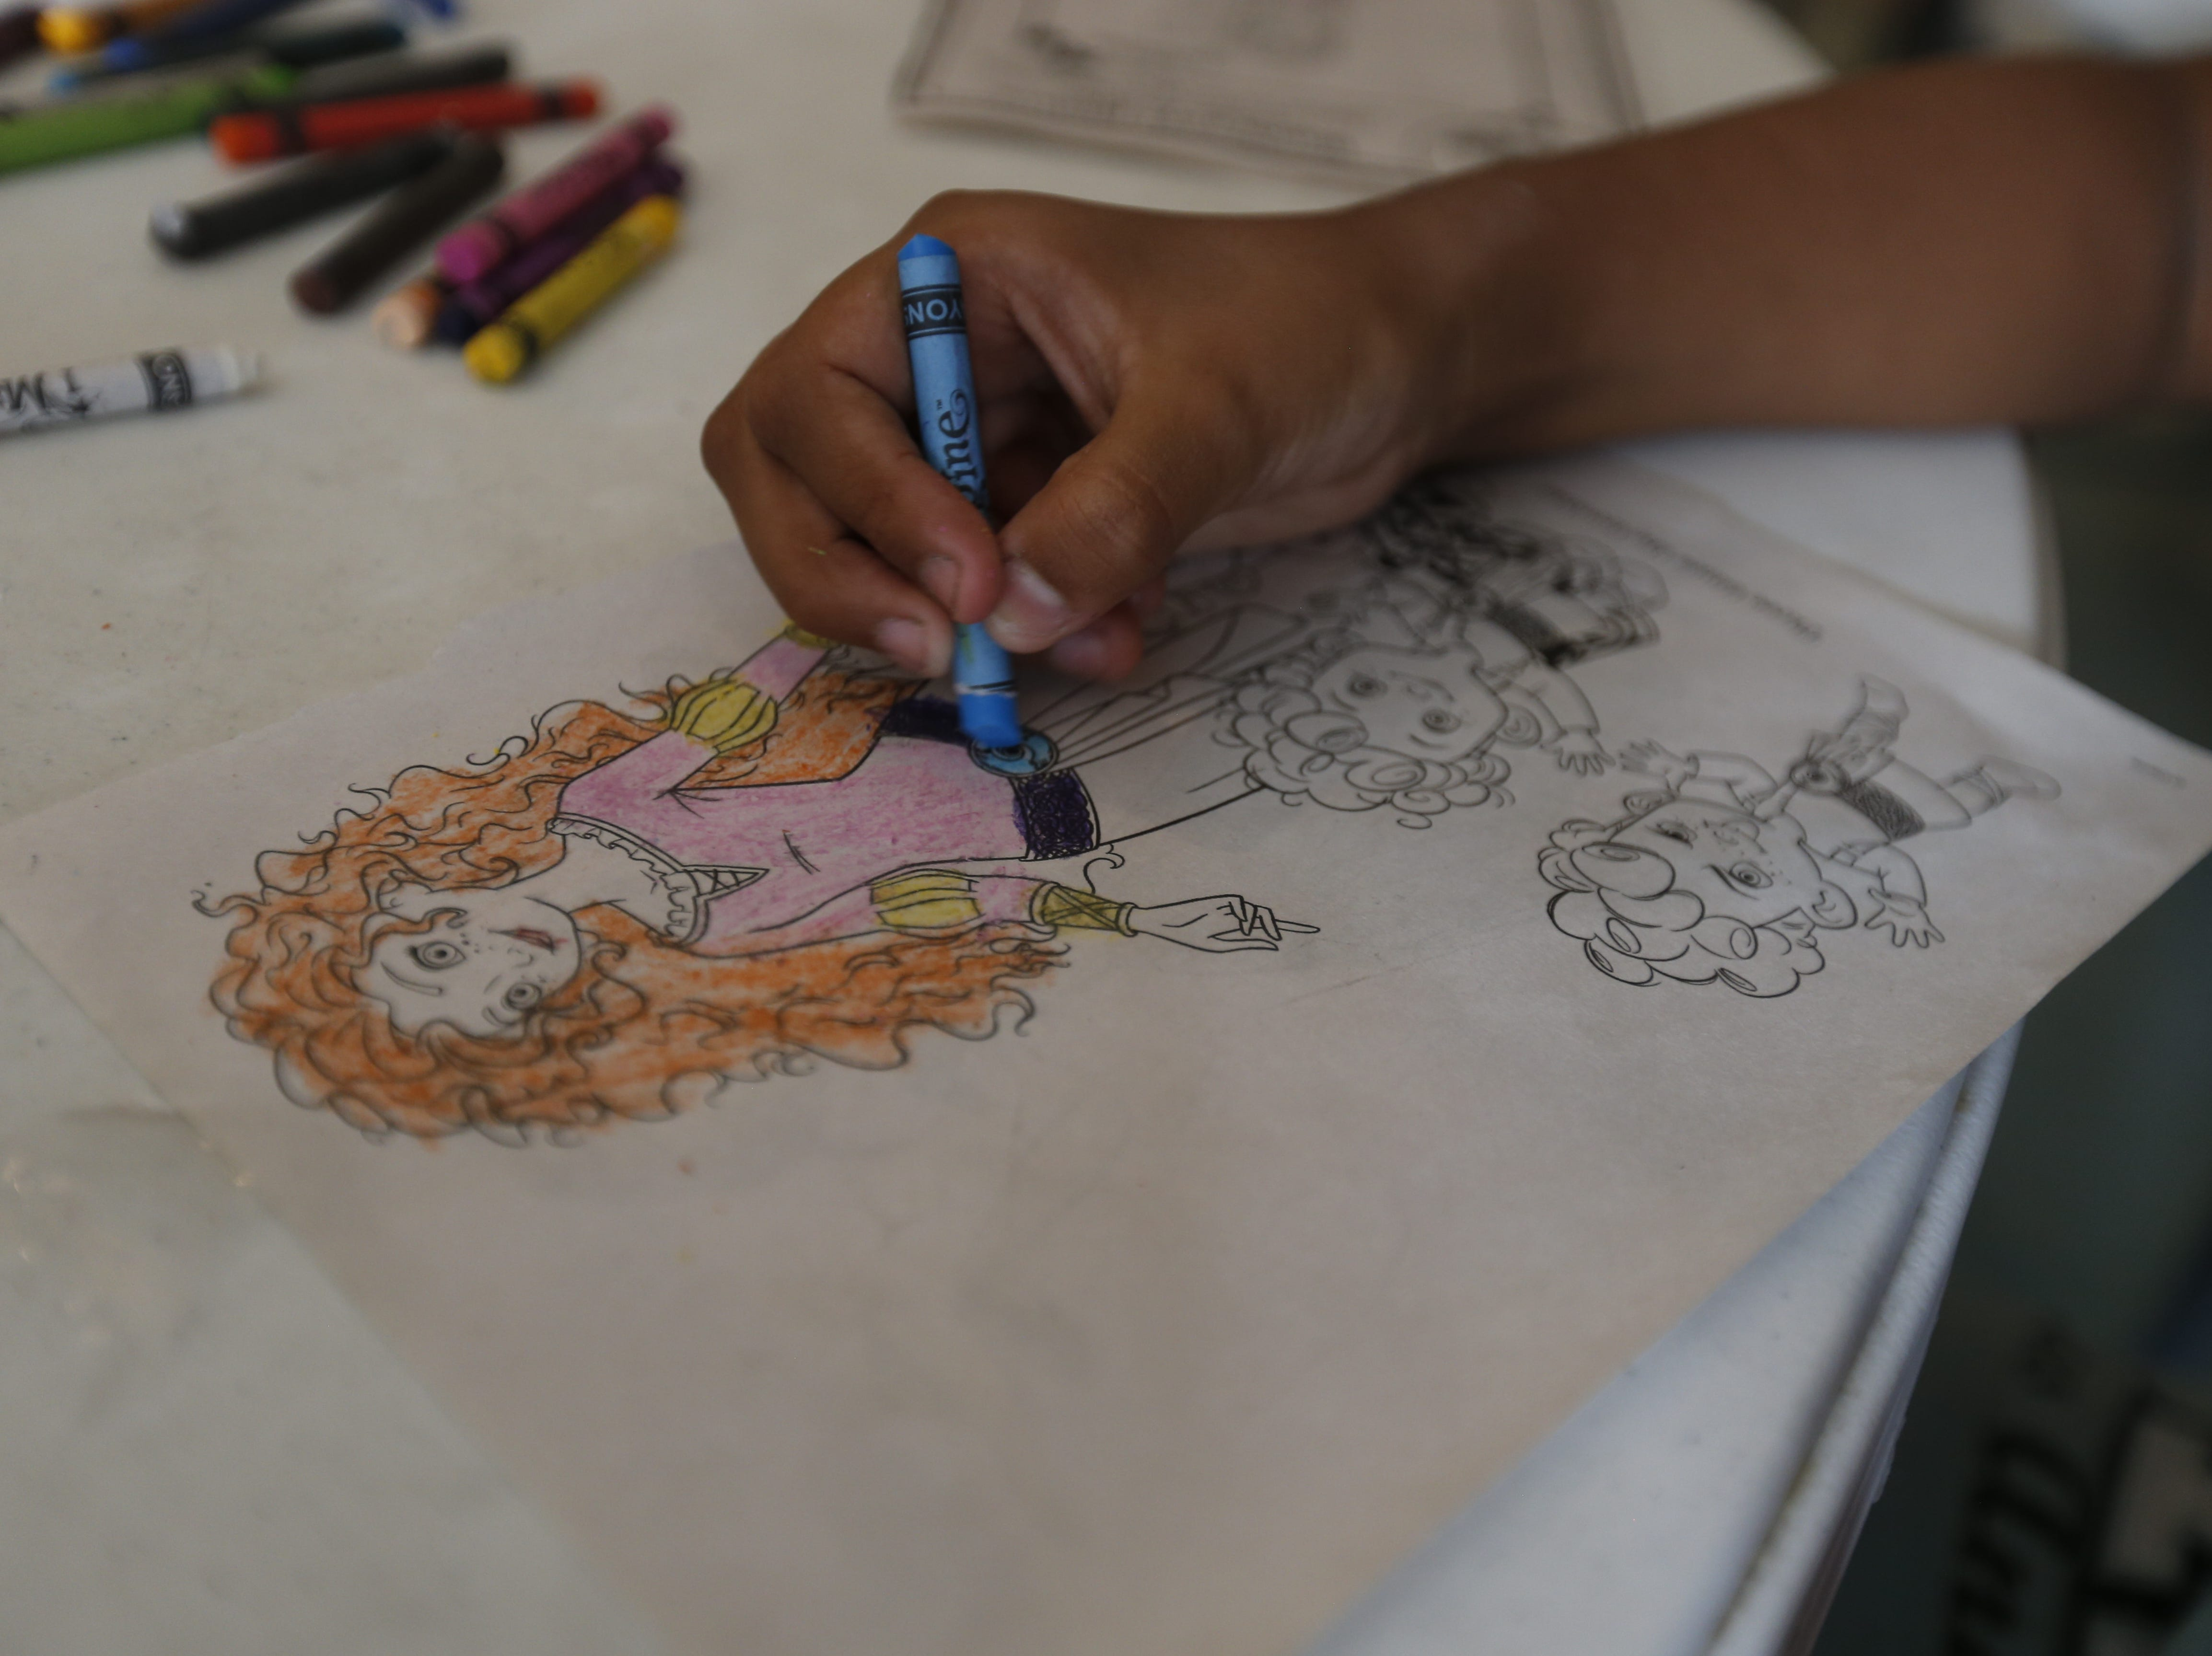 A migrant child colors in a drawing after arriving at a west El Paso hotel on Wednesday.